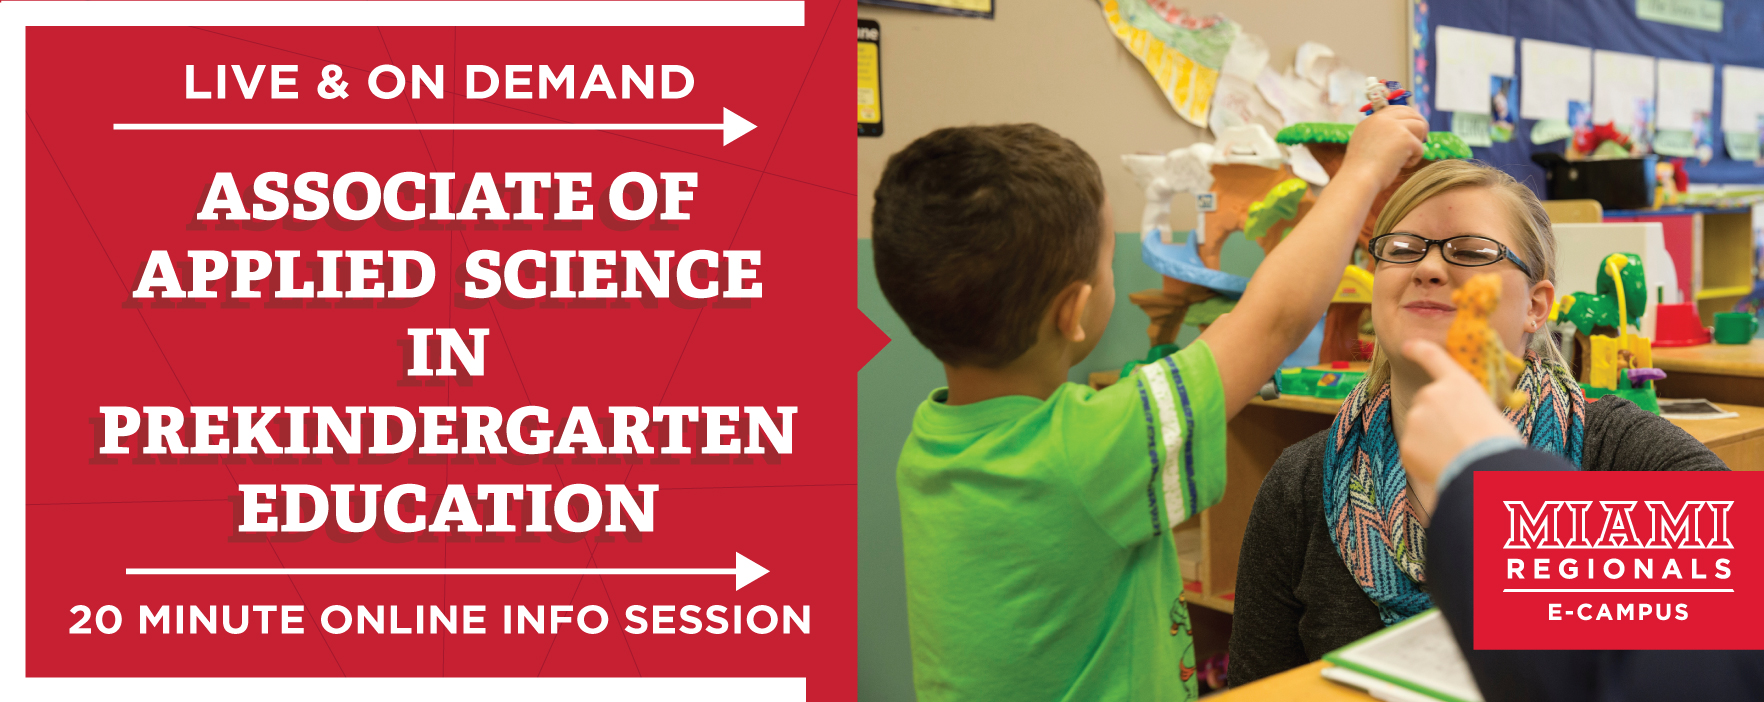 Live and On Demand.  Associate of Applied Science in Prekindergarten Education.  Twenty minute information session.